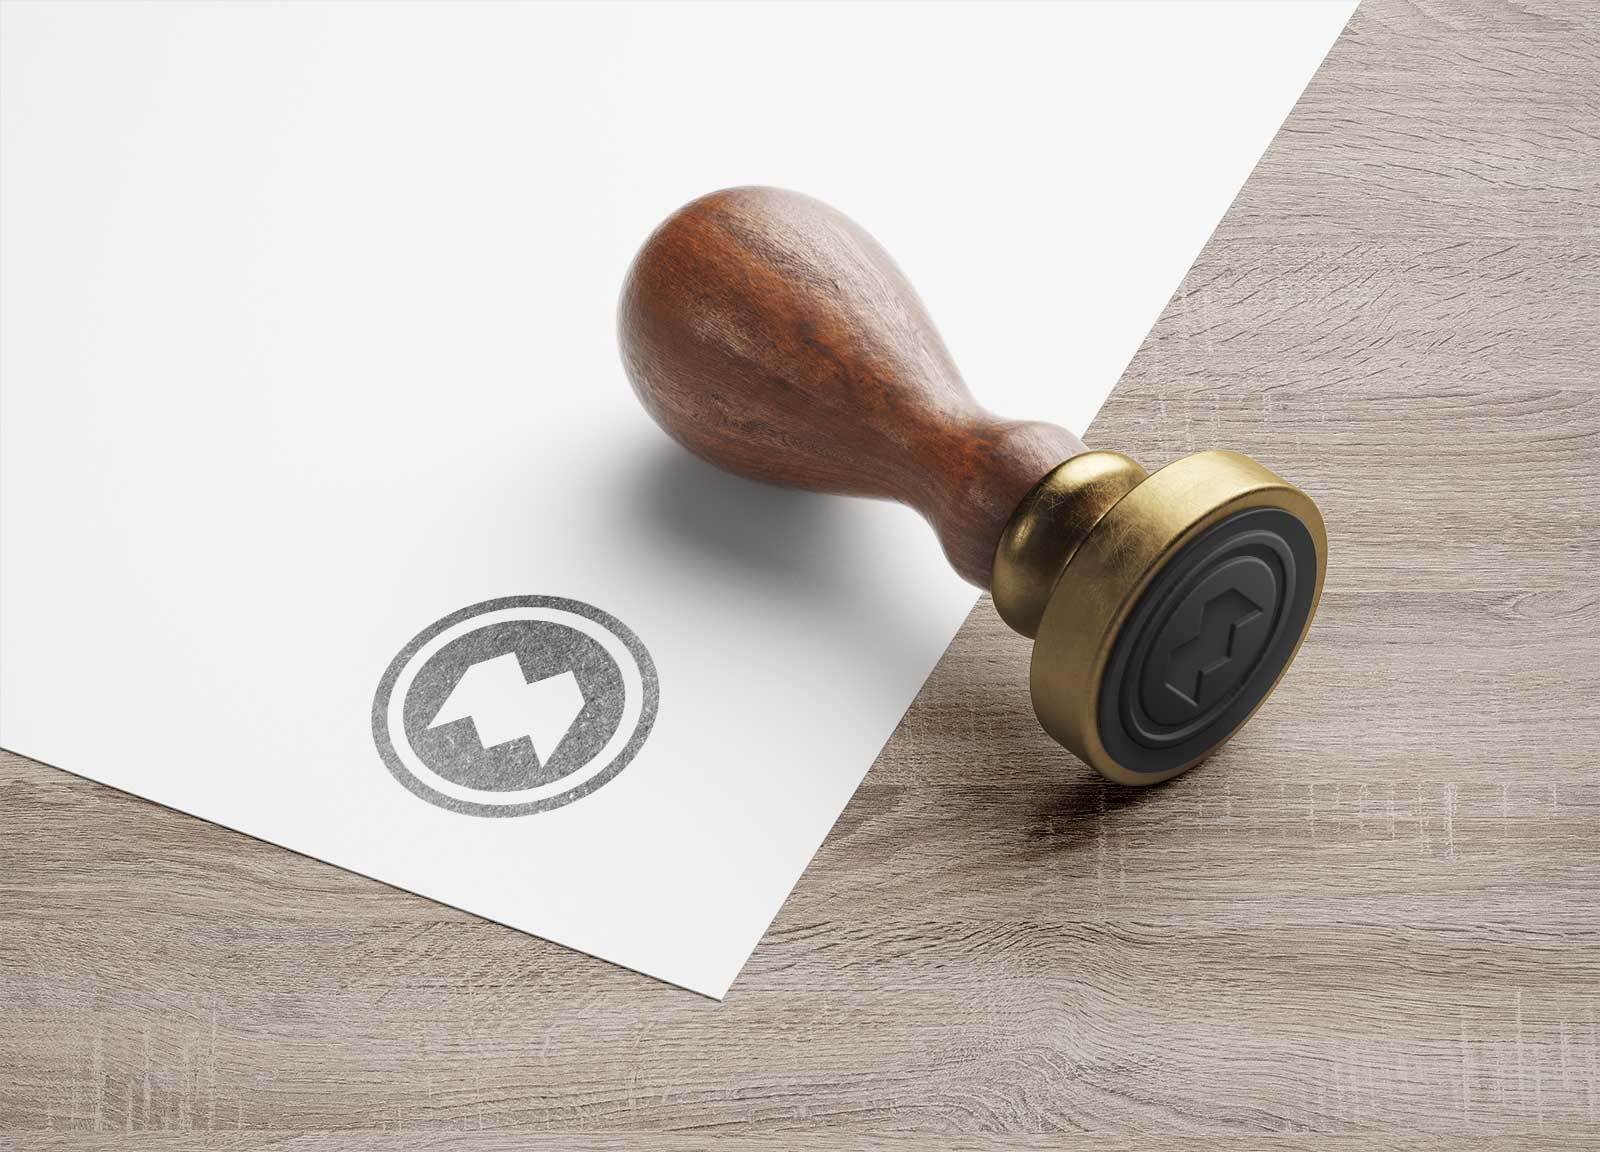 Free-Wooden-Round-Stamp-Mockup-PSD-2